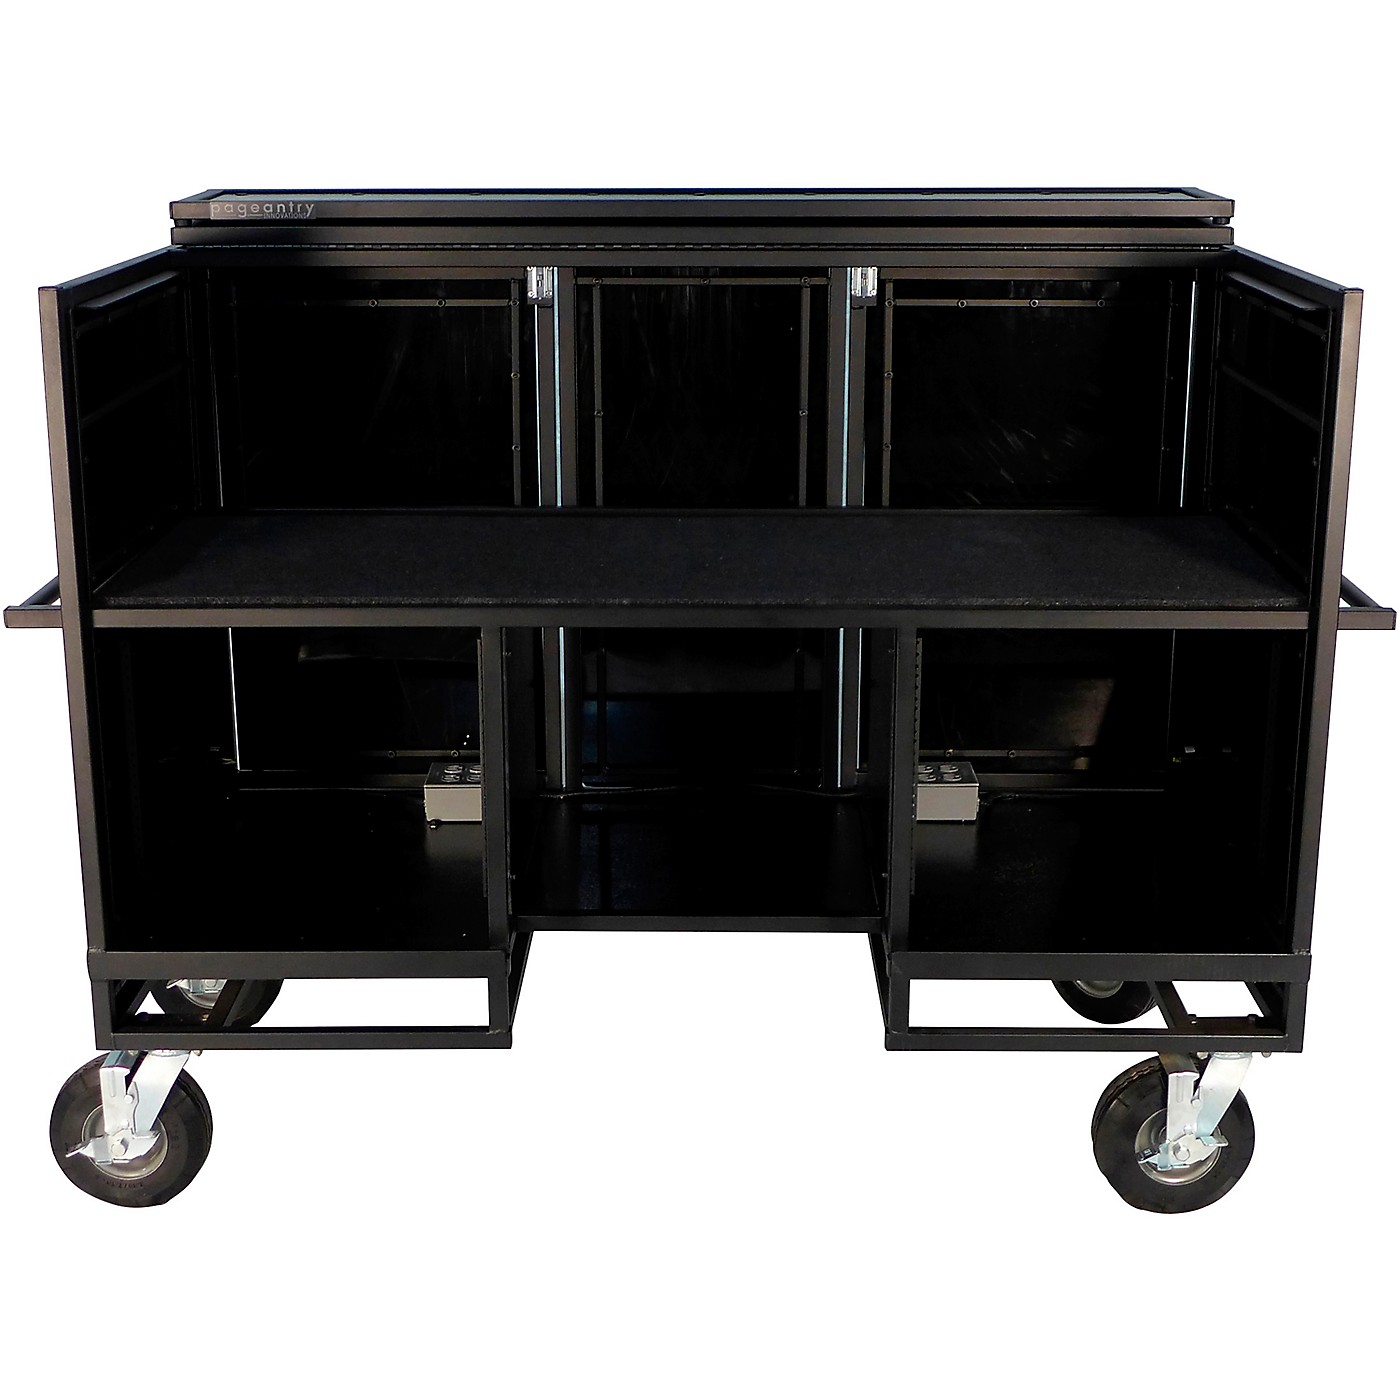 Pageantry Innovations Seated Synth/Mixer Combo Cart Stealth Series Upgrade w/ Bi-Fold Top Cover thumbnail